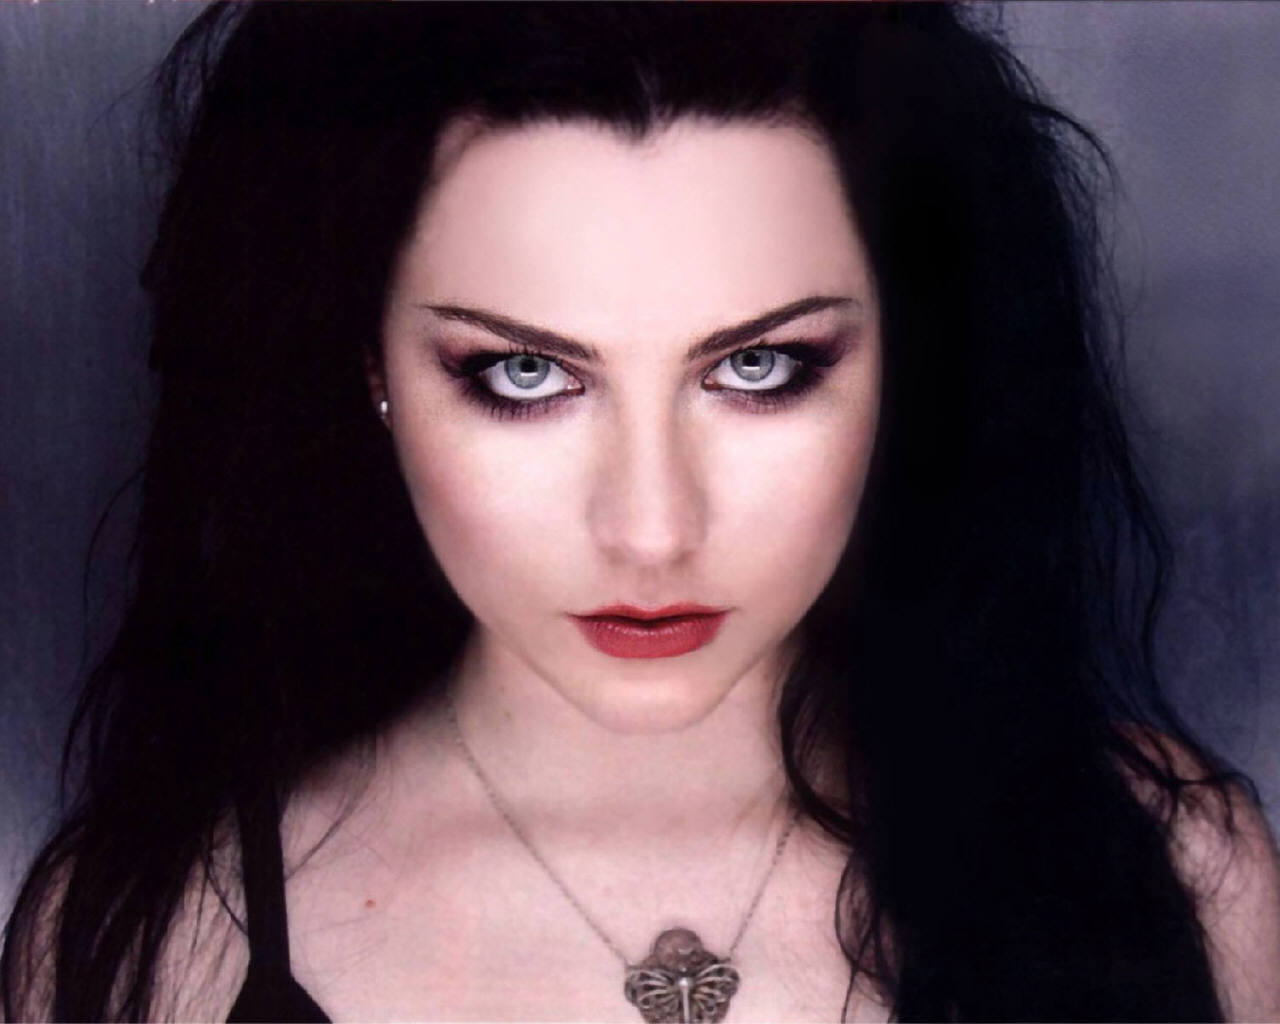 Amy Lee is the co-founder and lead vocalist of the rock band Evanescence.